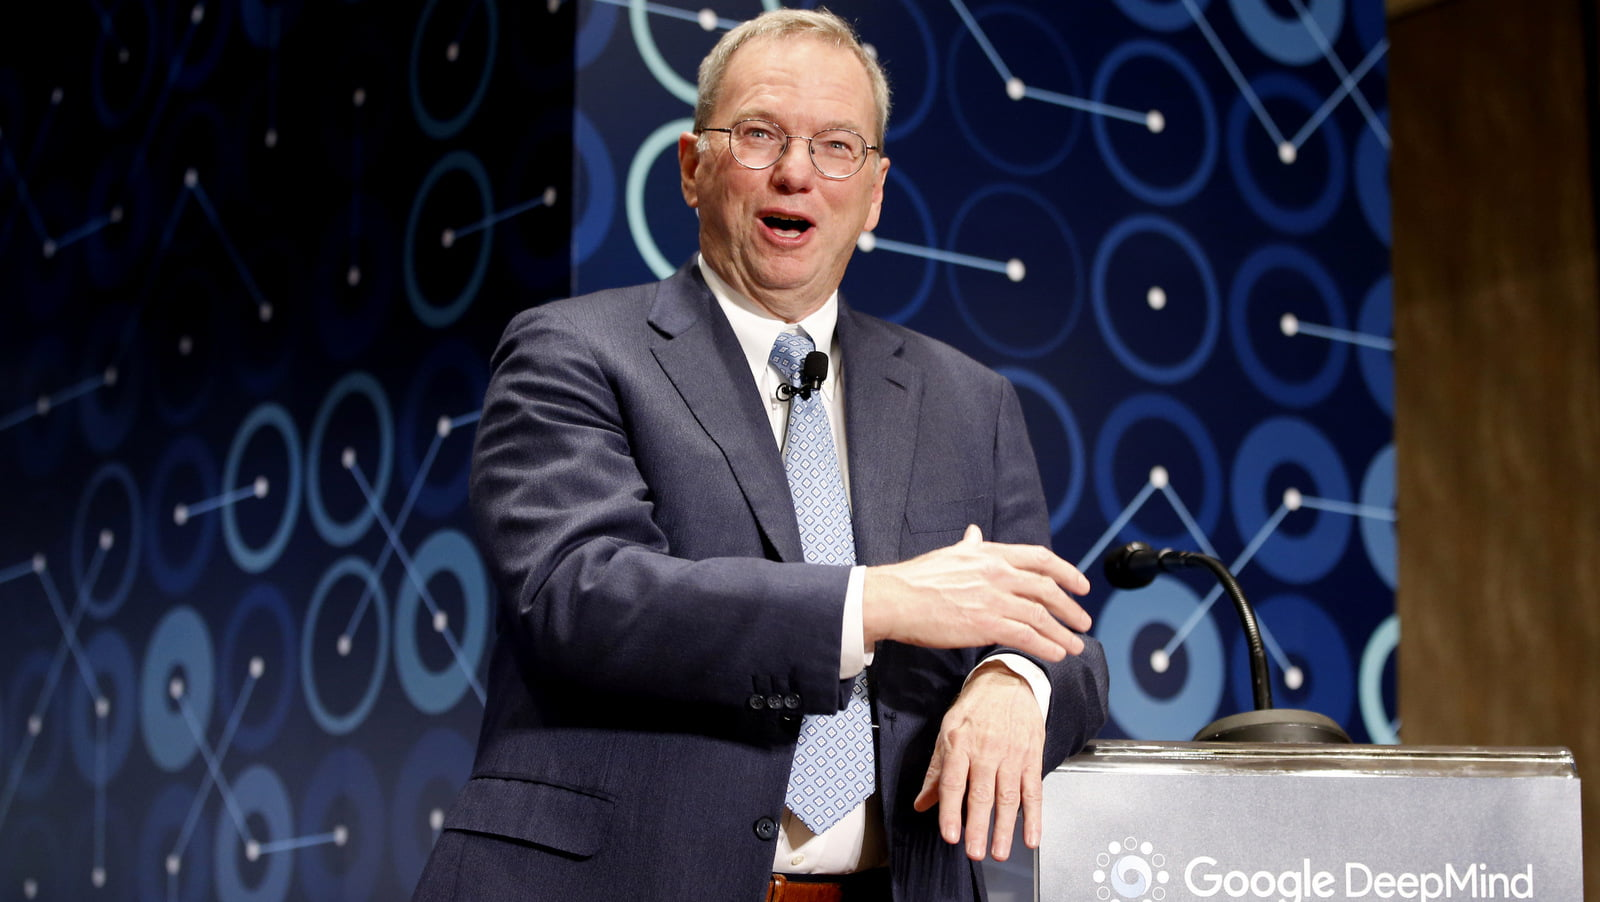 Eric Schmidt, then-executive chairman of Alphabet, speaks at a press conference at the Google DeepMind Challenge in Seoul, South Korea, March 8, 2016. (AP/Lee Jin-man)